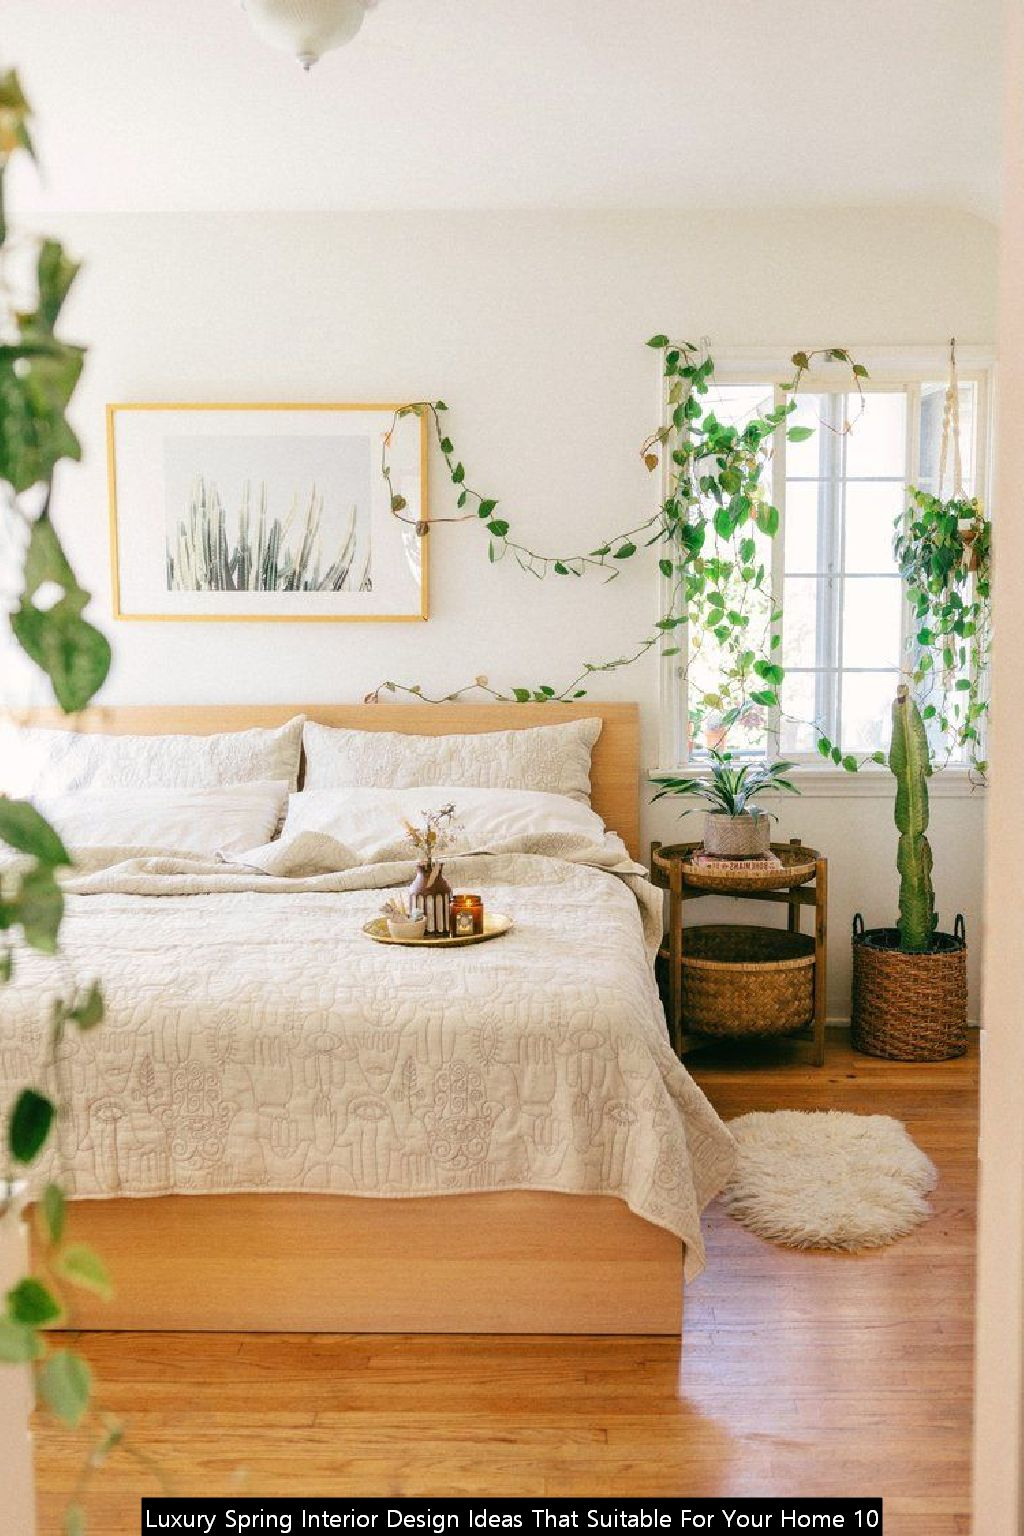 Luxury Spring Interior Design Ideas That Suitable For Your Home 10